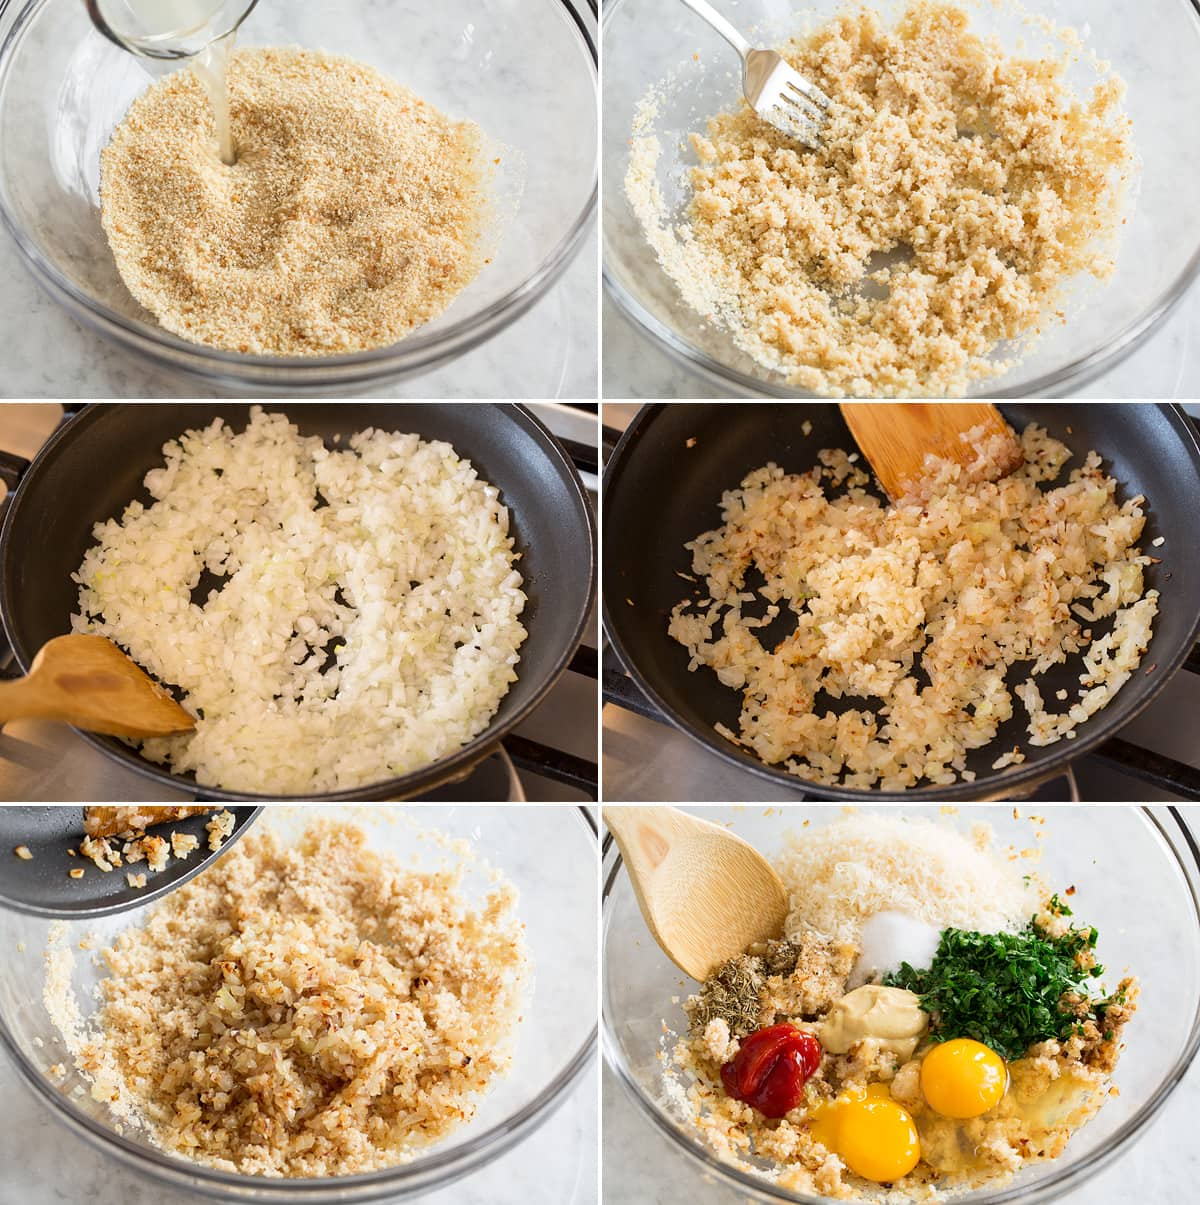 Collage of six photos showing first six steps of making turkey meatloaf. Shows mixing bread crumbs and chicken broth in a bowl. Sautéing onion and garlic in skillet. Adding onion mixture to crumb mixture along with eggs and flavoring ingredients.